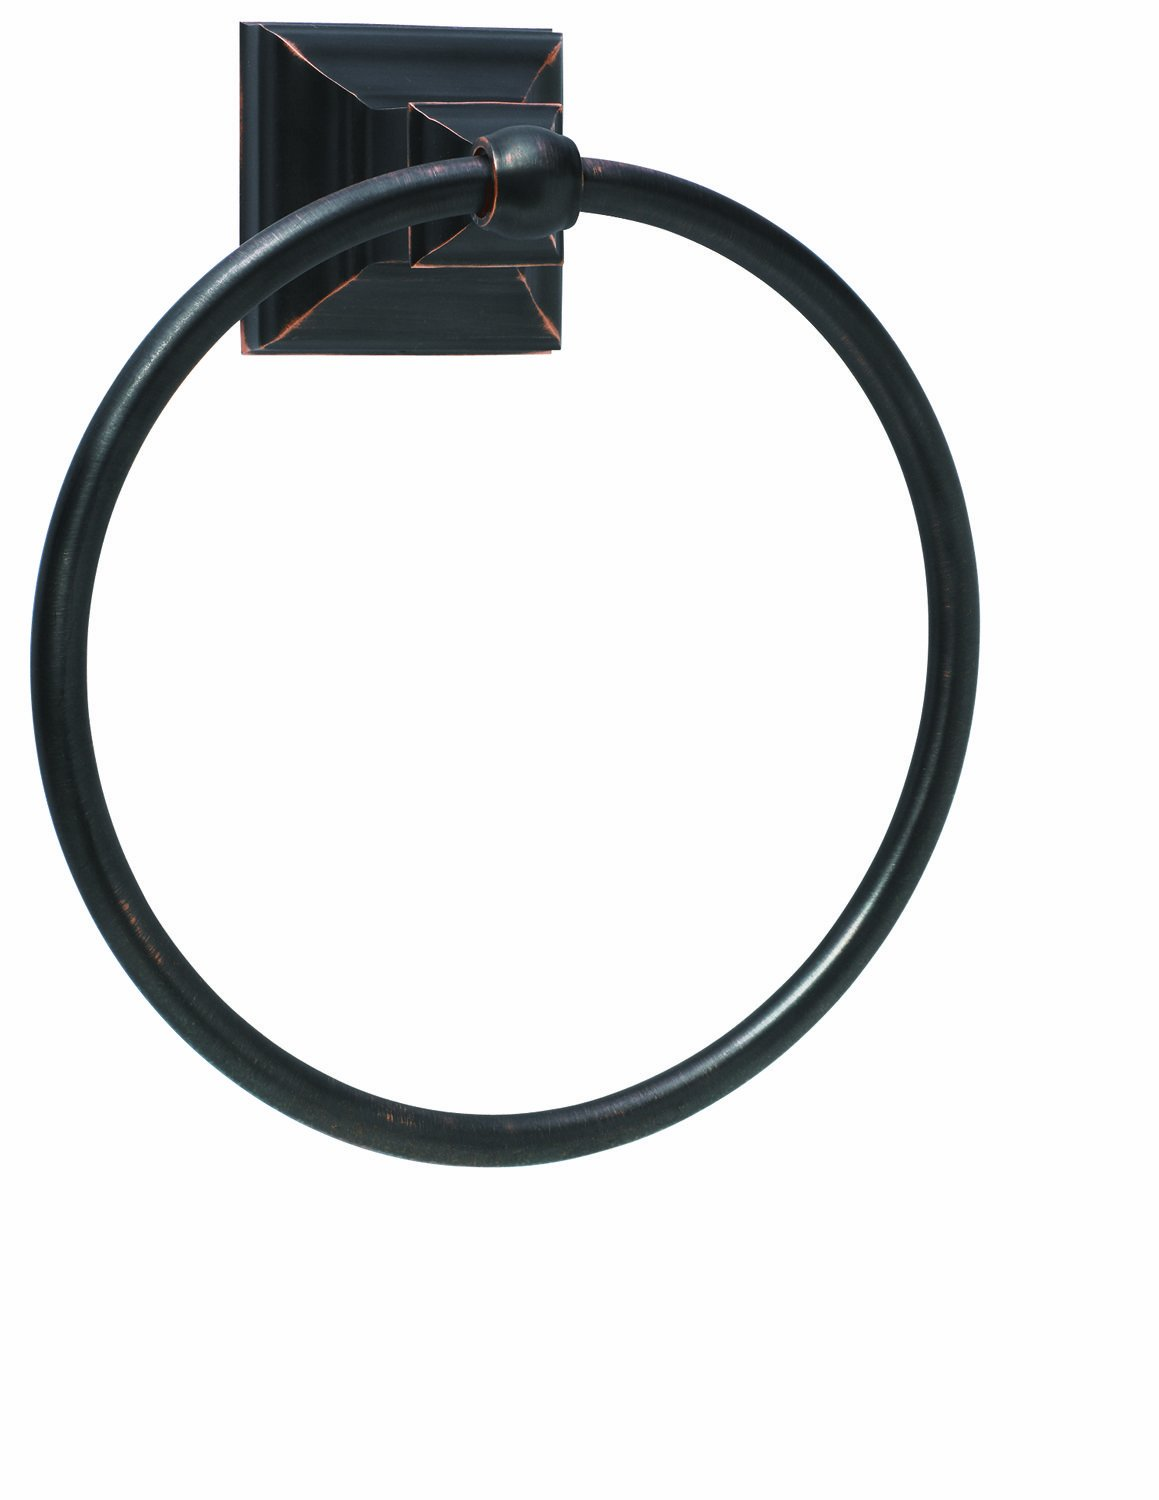 Amerock BH26511-ORB Markham Collection Towel Ring, Oil Rubbed Bronze